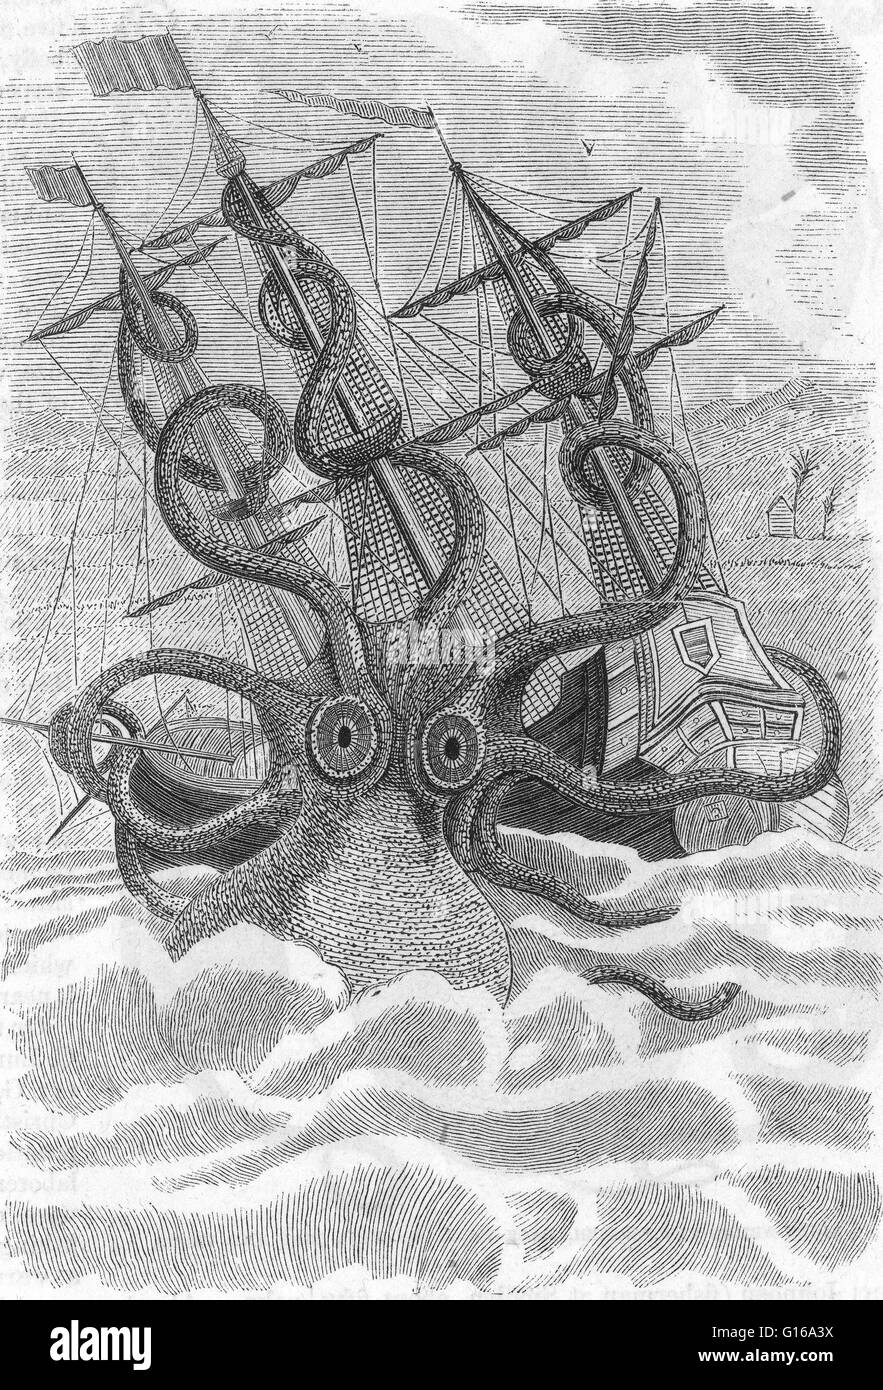 The colossal octopus drawing by malacologist Pierre Dénys de Montfort, 1801, from the descriptions of French - Stock Image